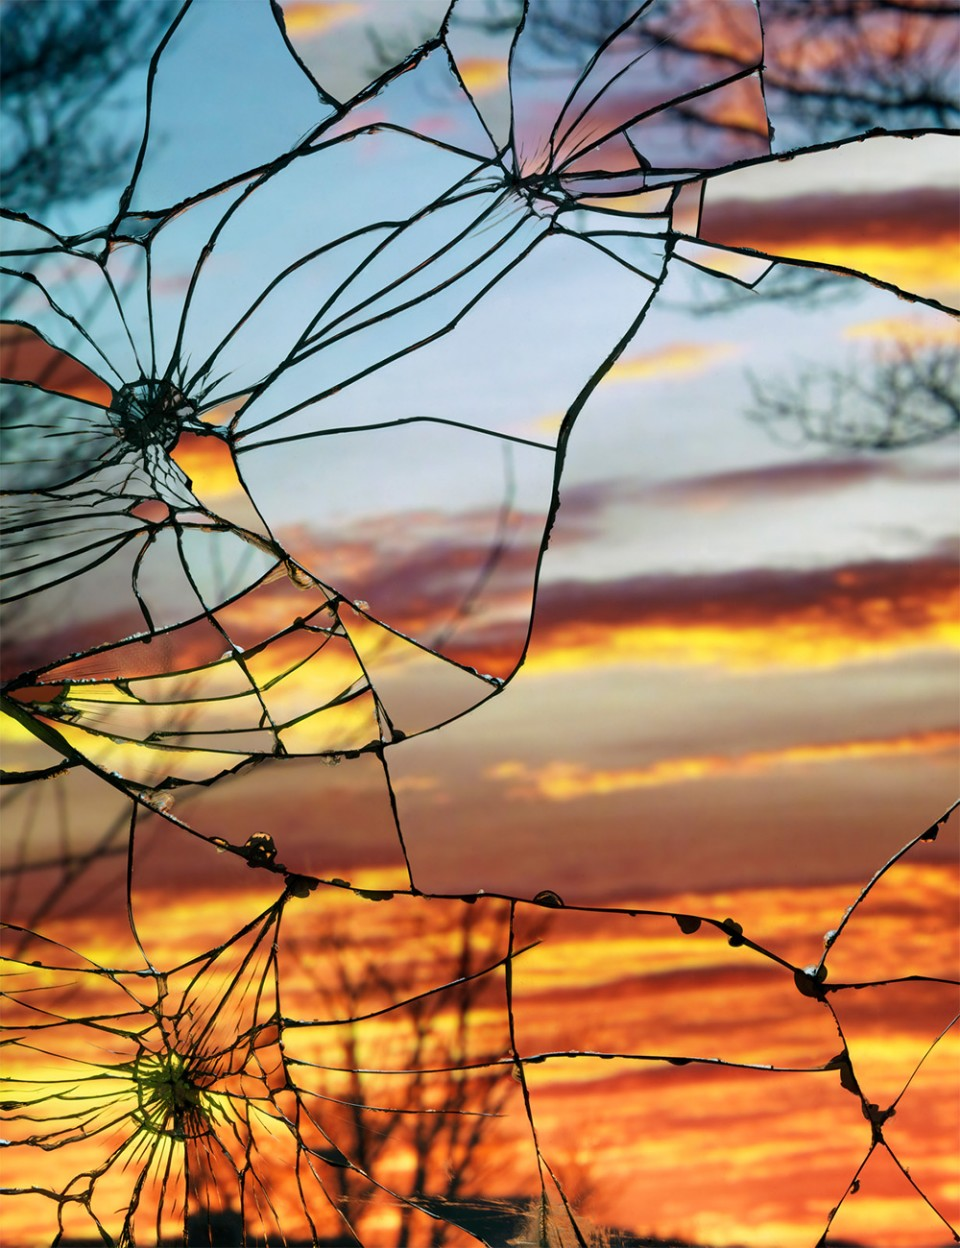 broken-mirror-evening-sky-960x1248